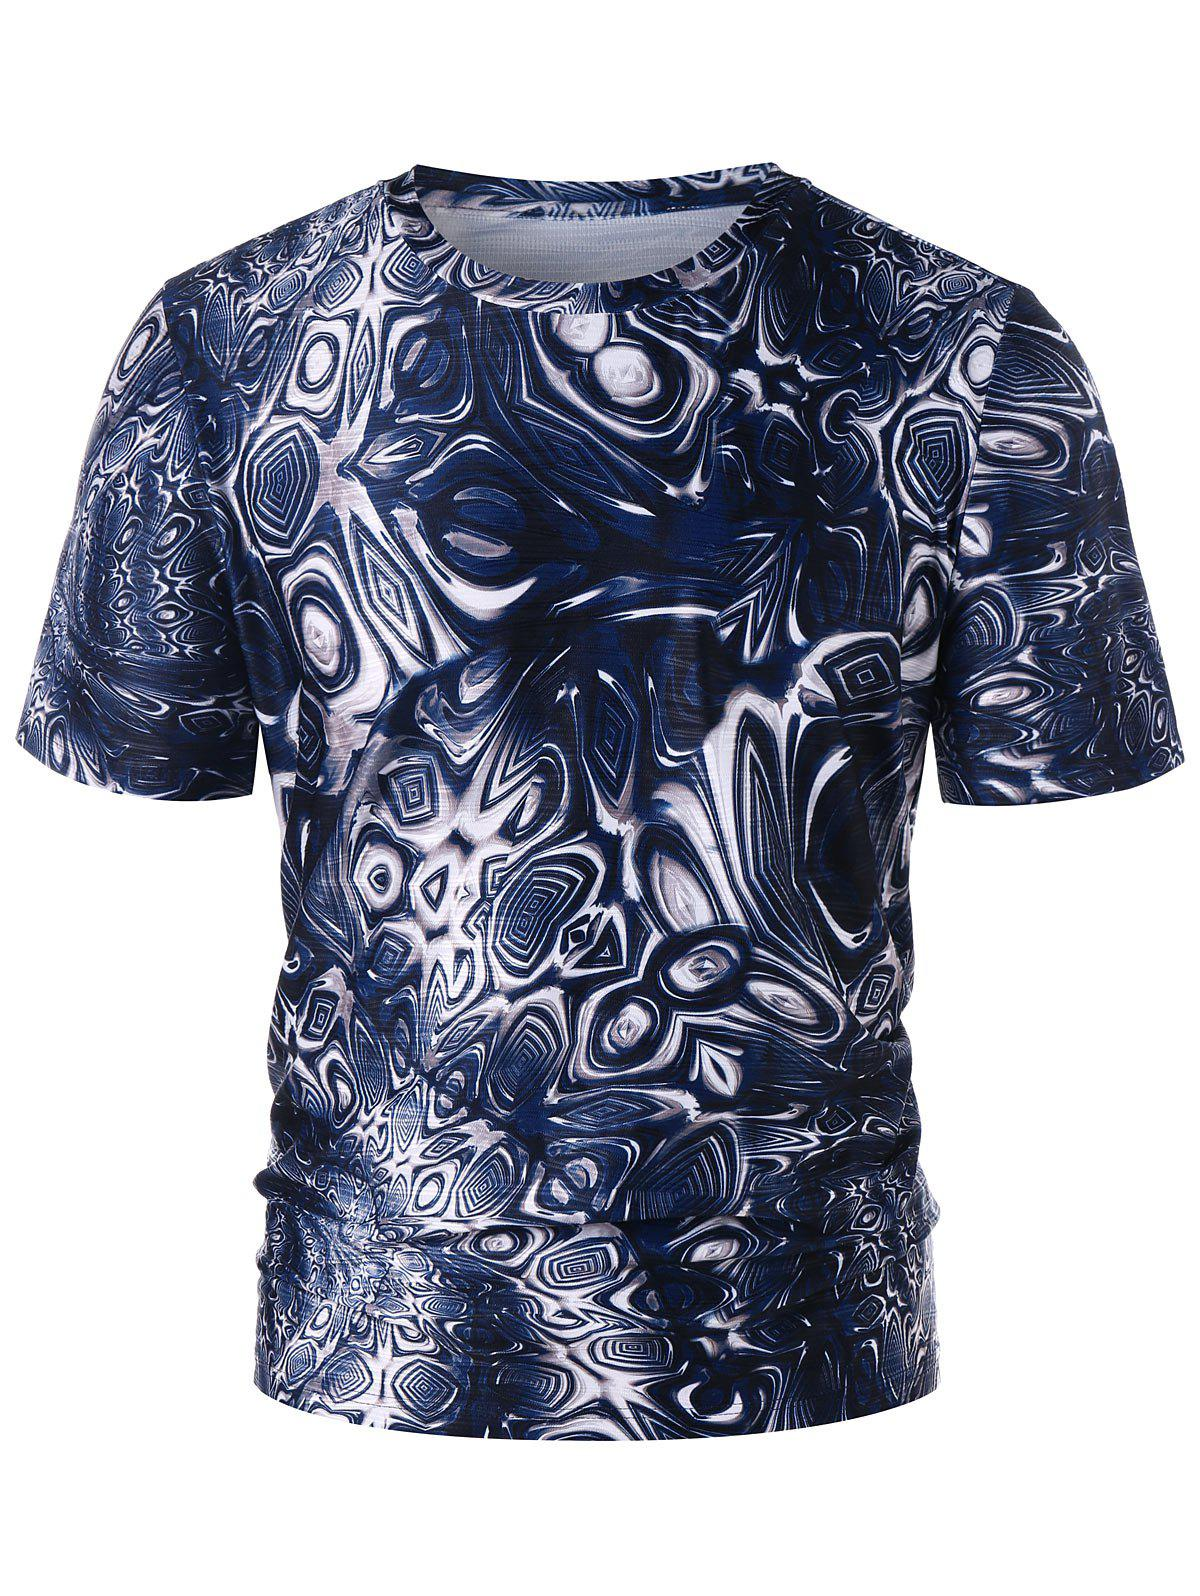 Trippy Pattern Crew Neck T-shirt - DEEP BLUE L